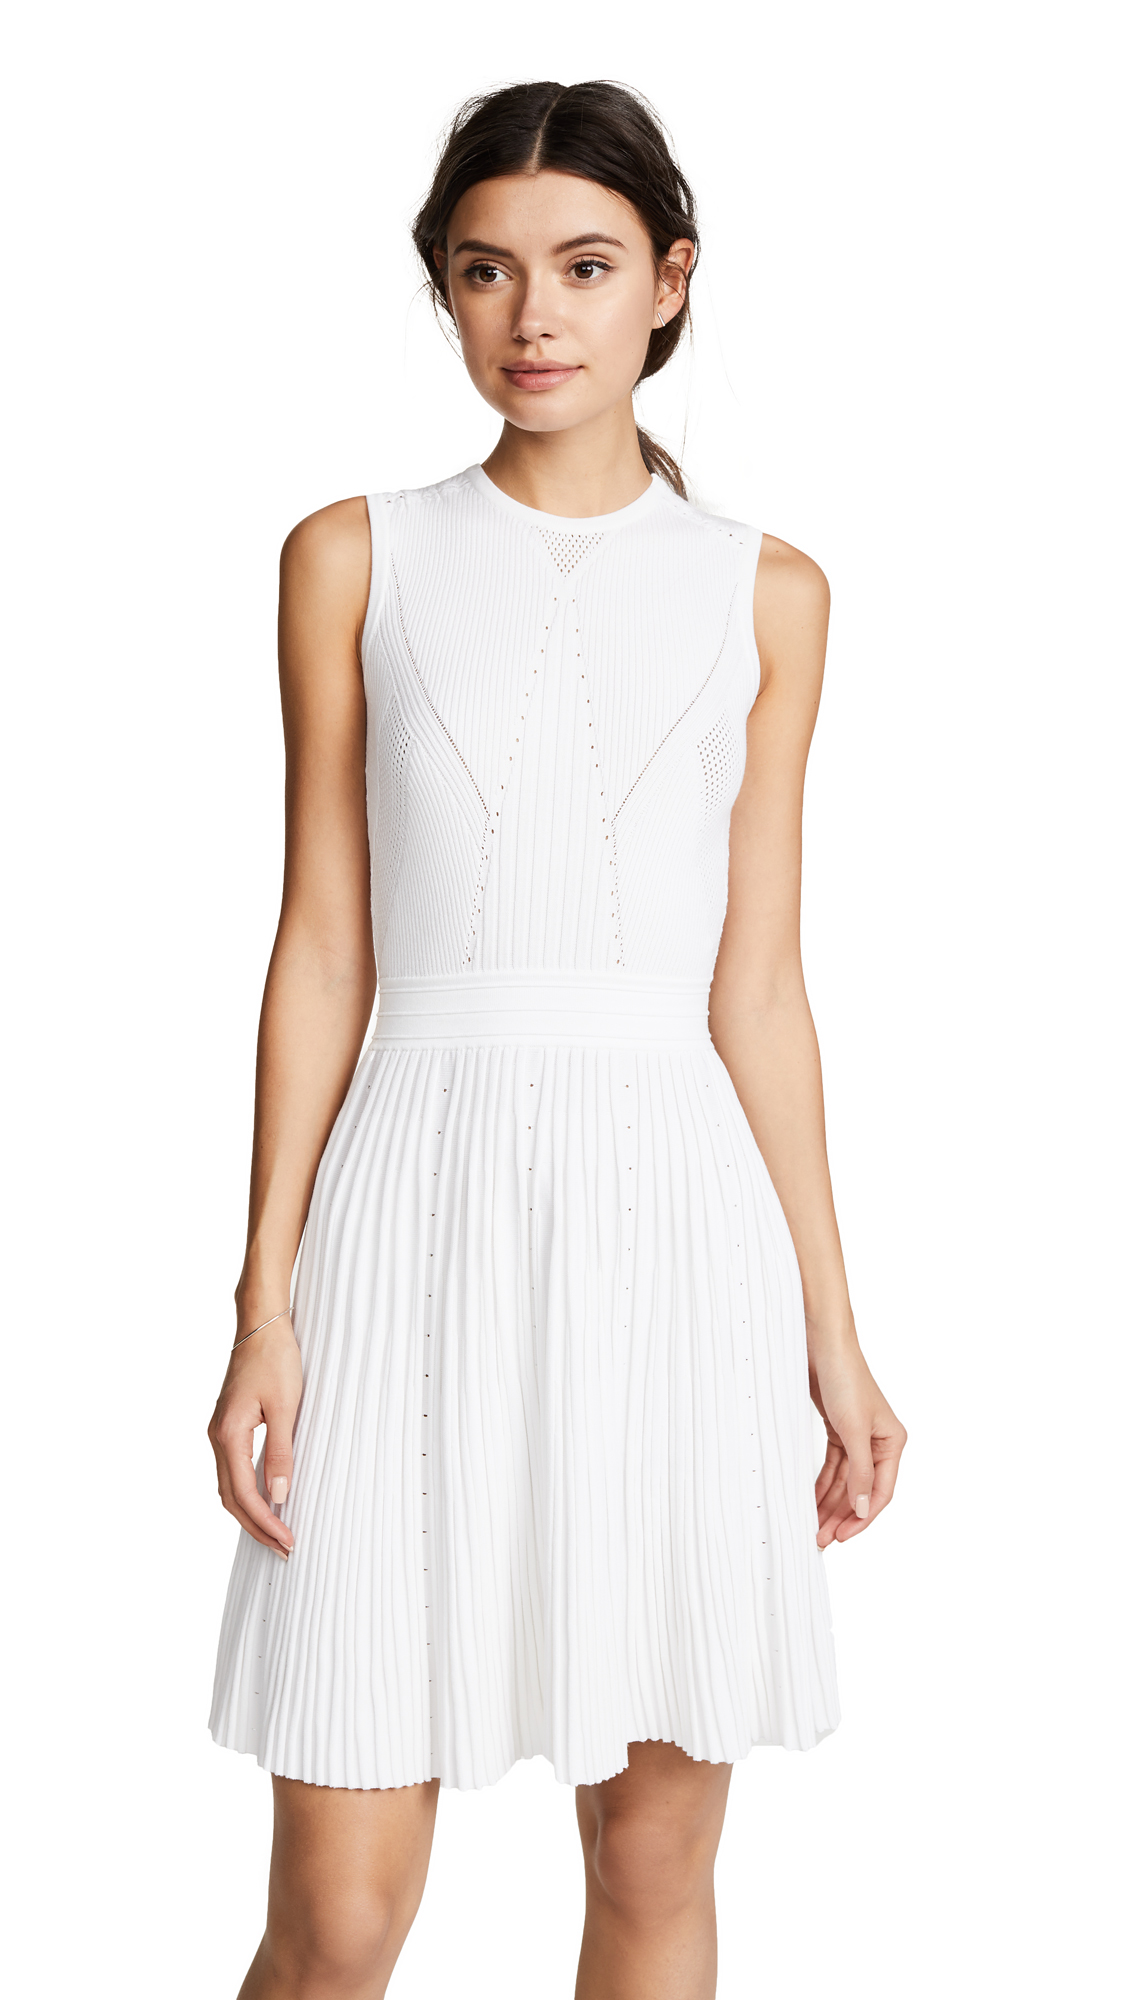 Versace Pointelle Knit Dress with Flare Skirt